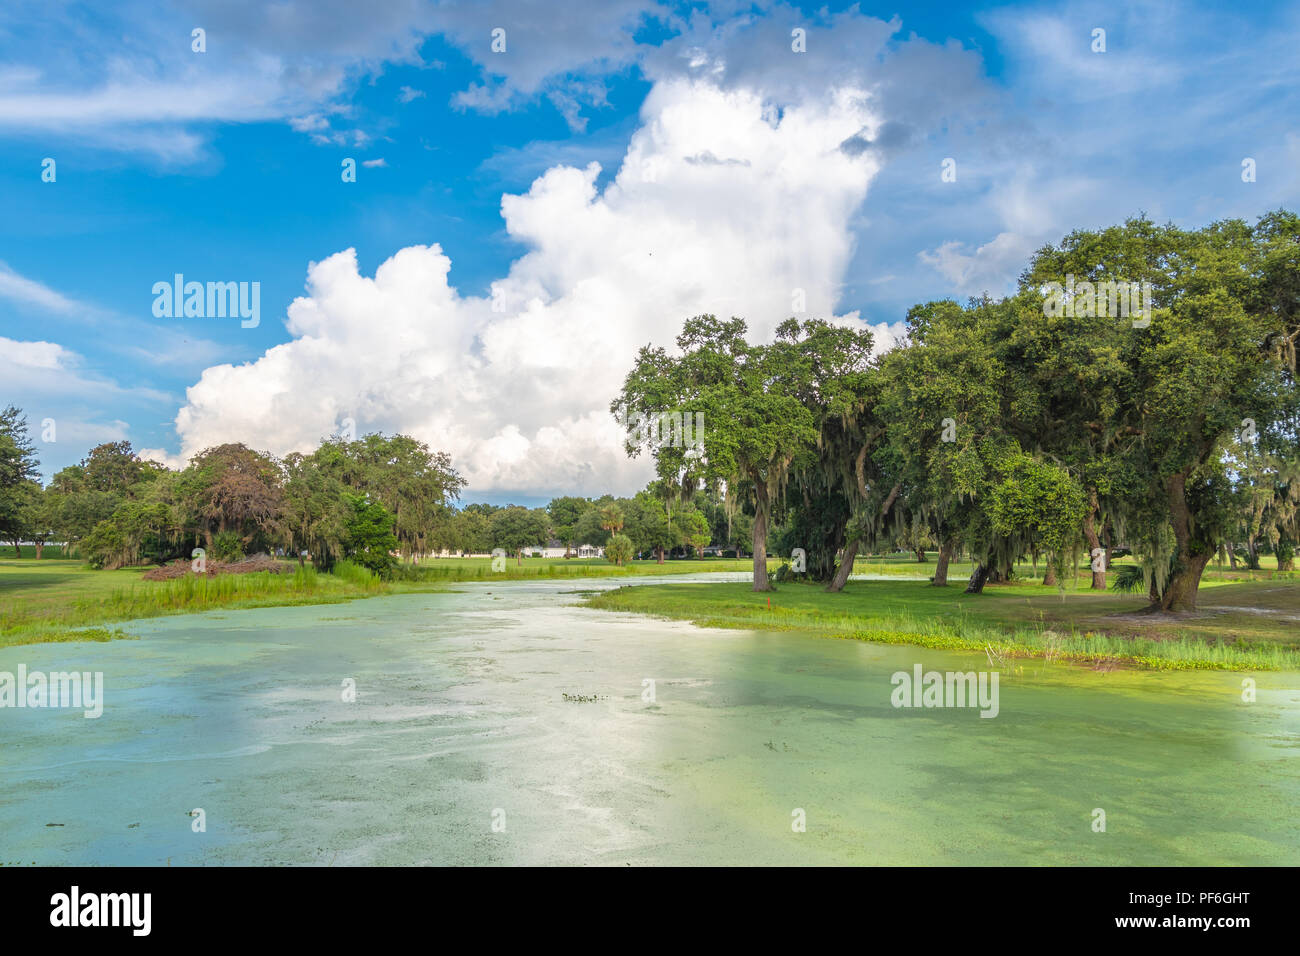 Late afternoon summer cumulonimbus clouds build in central Florida over a pond covered in duckweed. These clouds are often harbingers of severe thunde - Stock Image